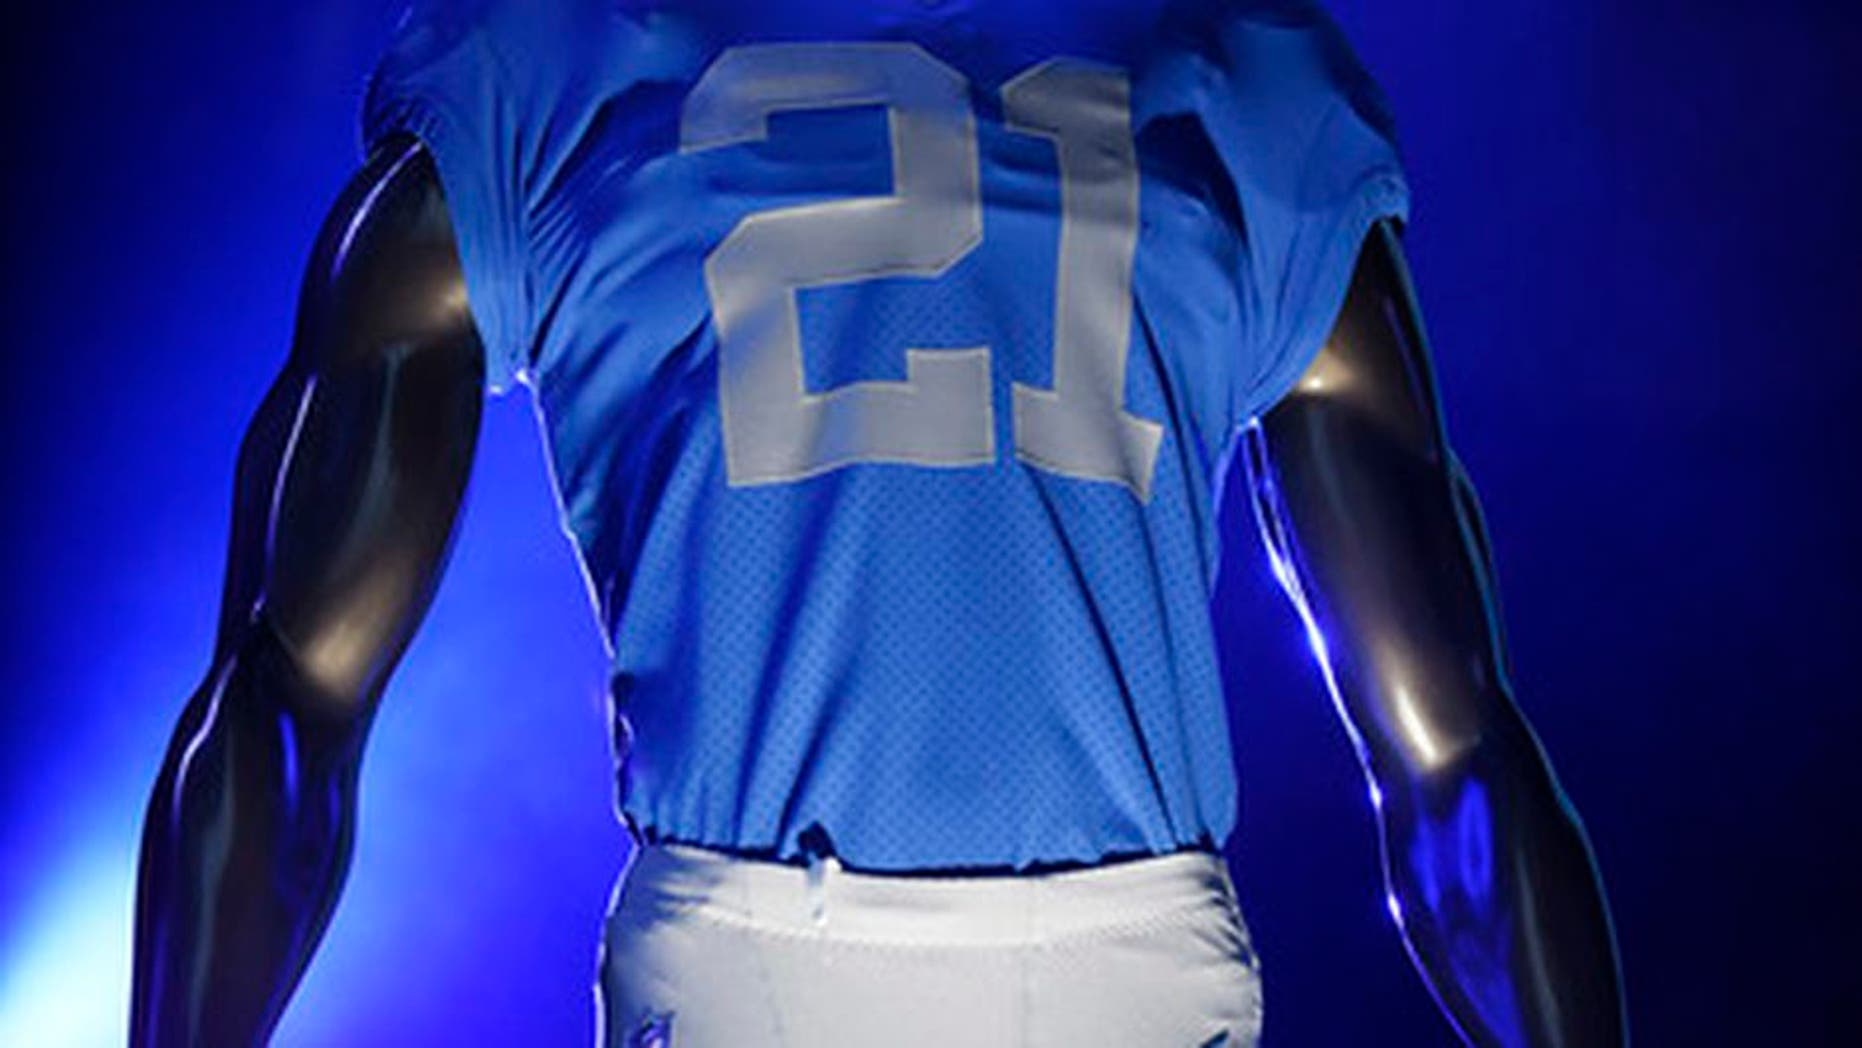 One of four new Detroit Lions uniforms is displayed at Ford Field in Detroit on Thursday, April 13, 2017. (Clarence Tabb Jr./The Detroit News via AP)